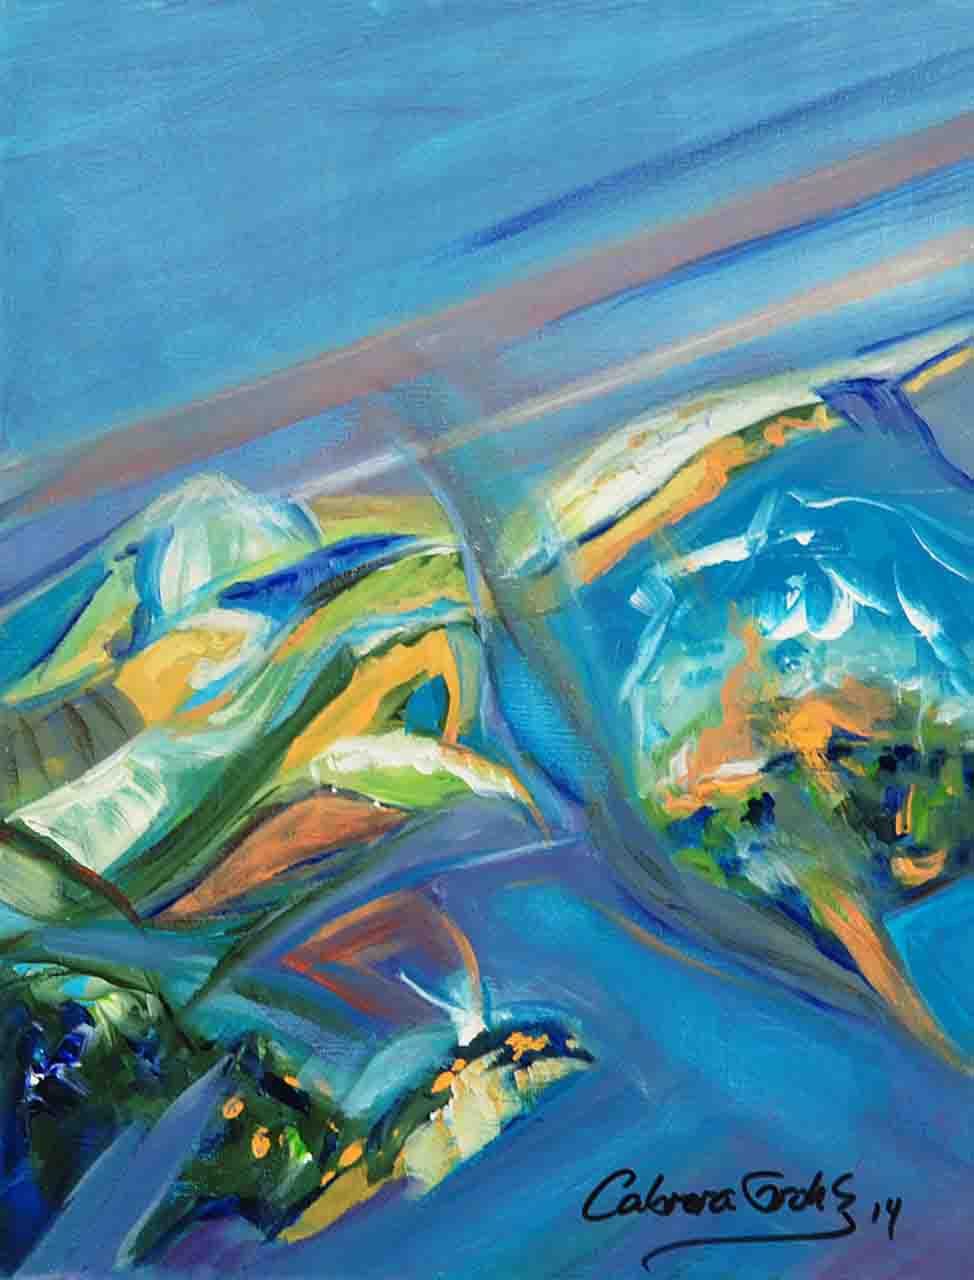 Acrylic painting in abstract style of a Cuban garden plenty of blue colors